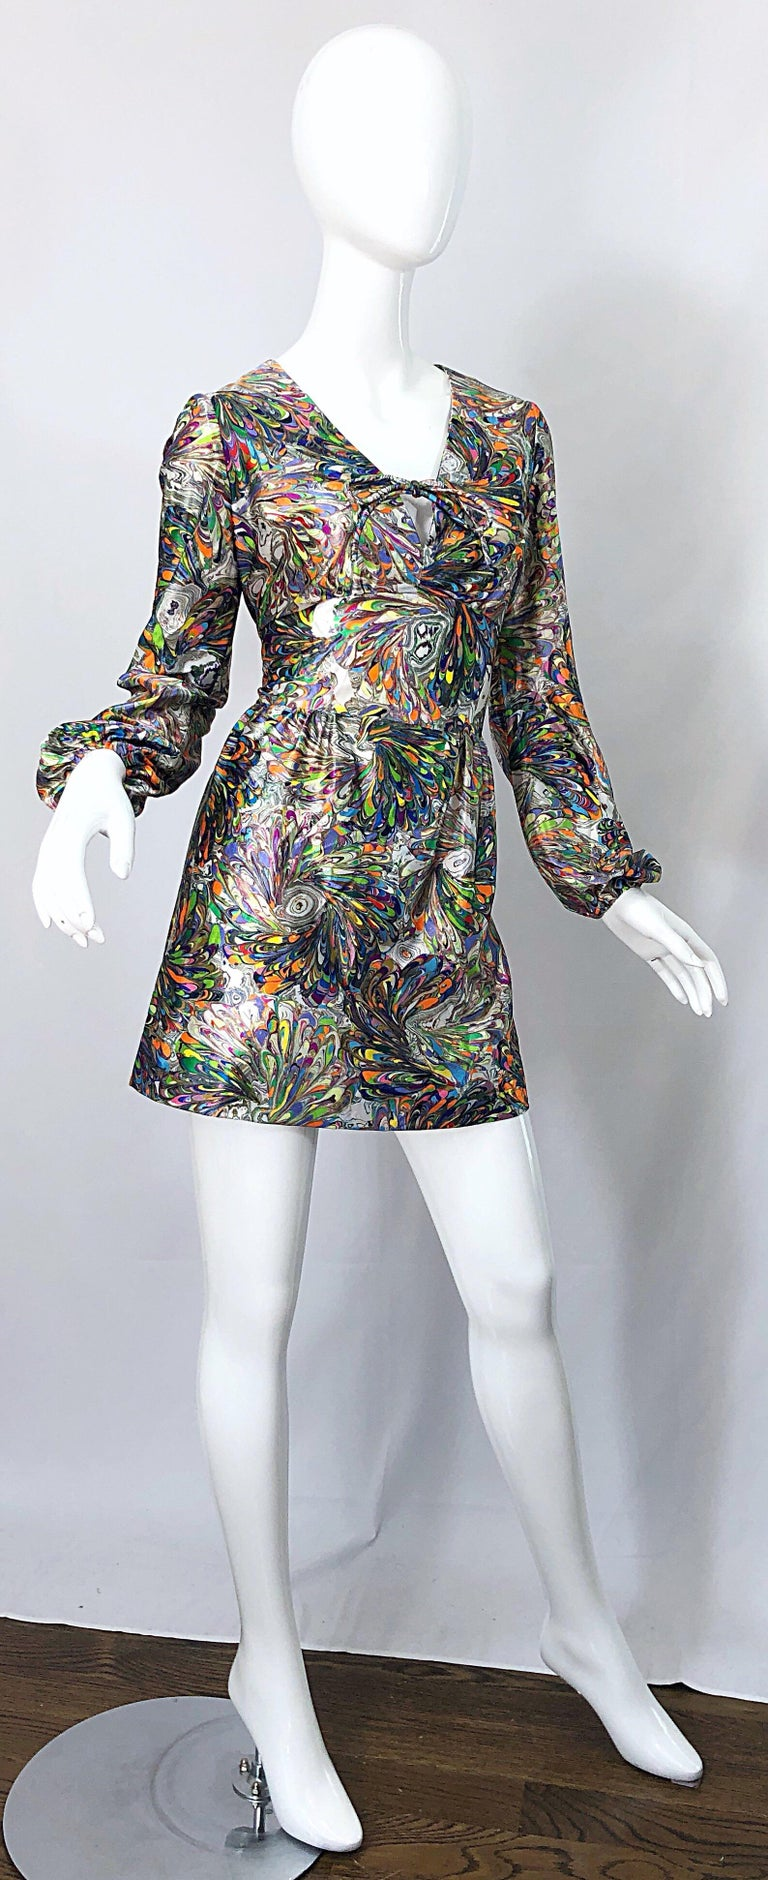 1970s Mosaic Swirl Vibrant Colored Bishop Sleeve Vintage 70s Tunic Dress For Sale 5